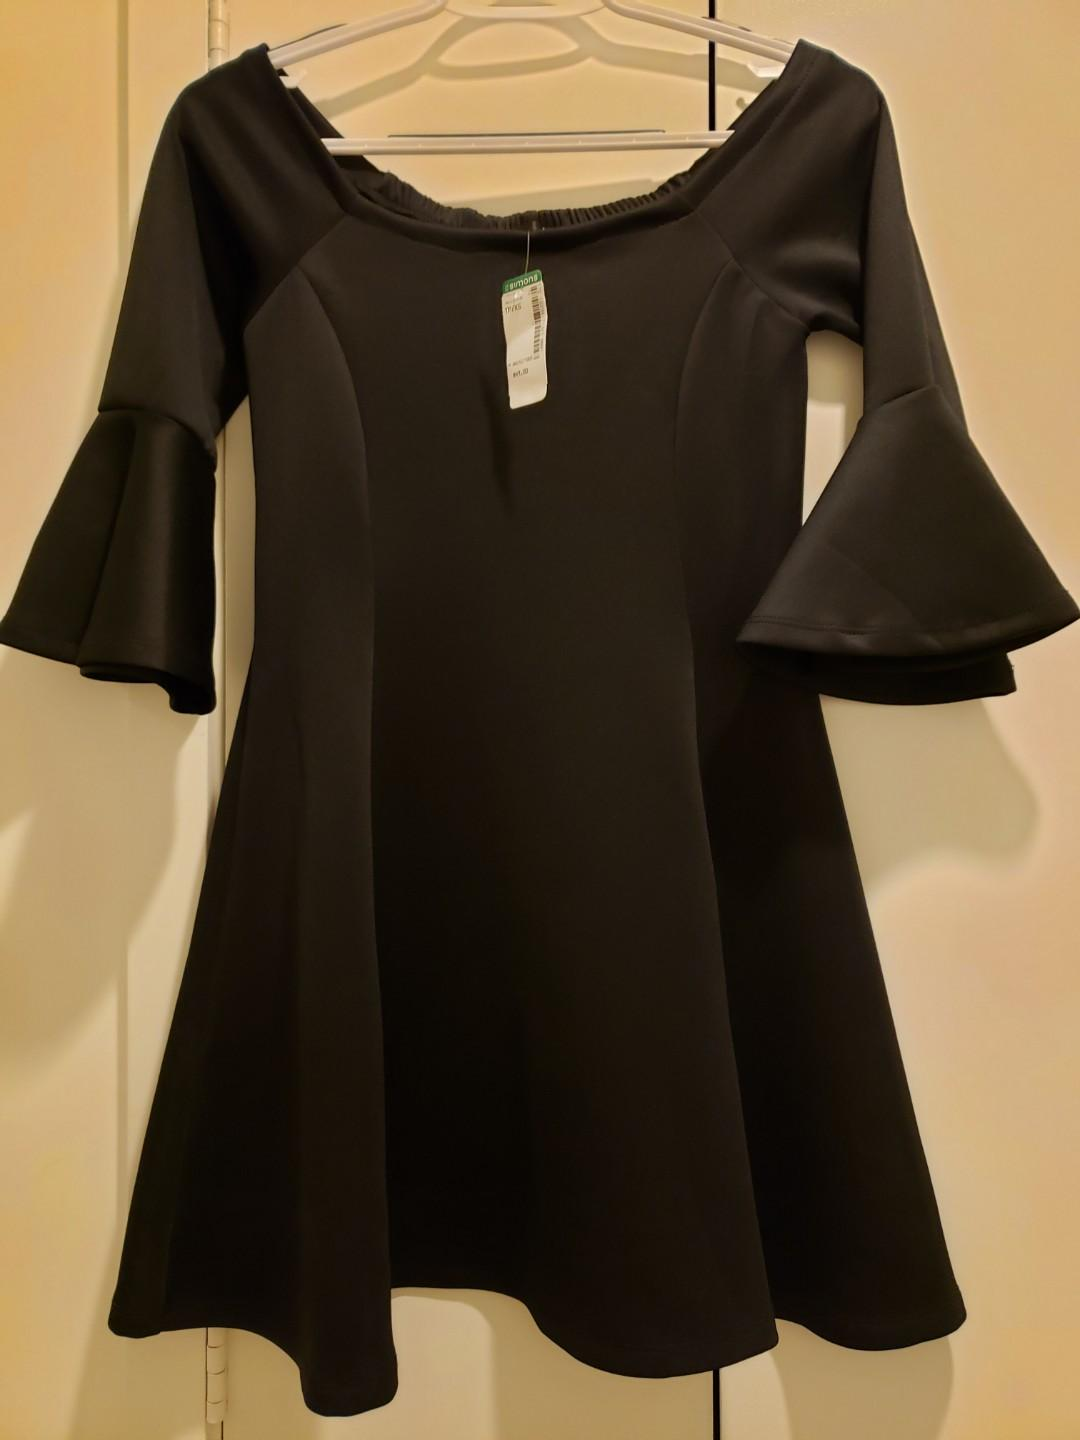 Simon's XS brand new with tags black low shoulder flare dress